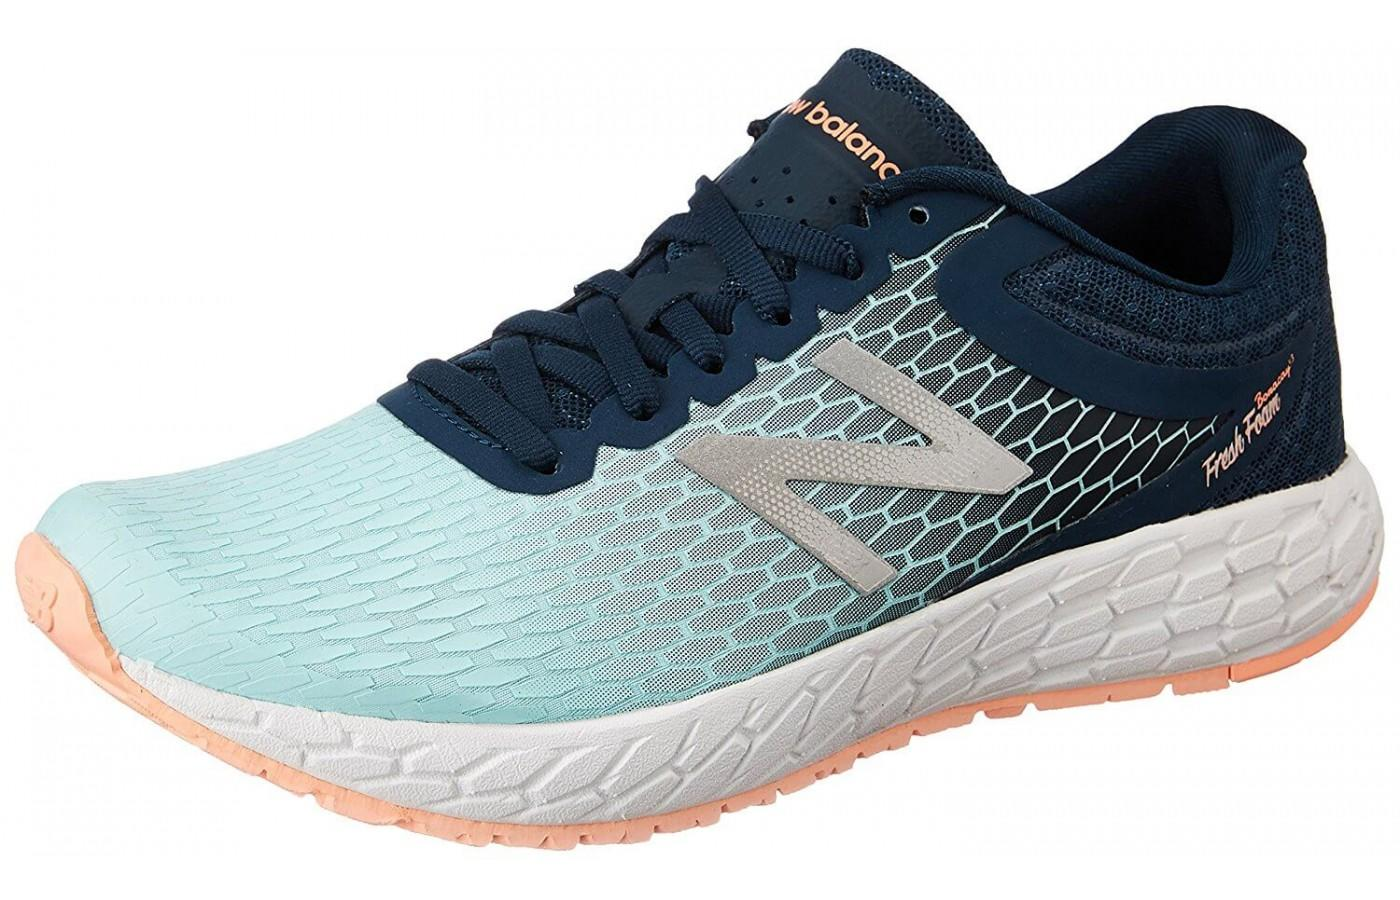 New Balance Fresh Foam Boracay V3 features an open mesh upper